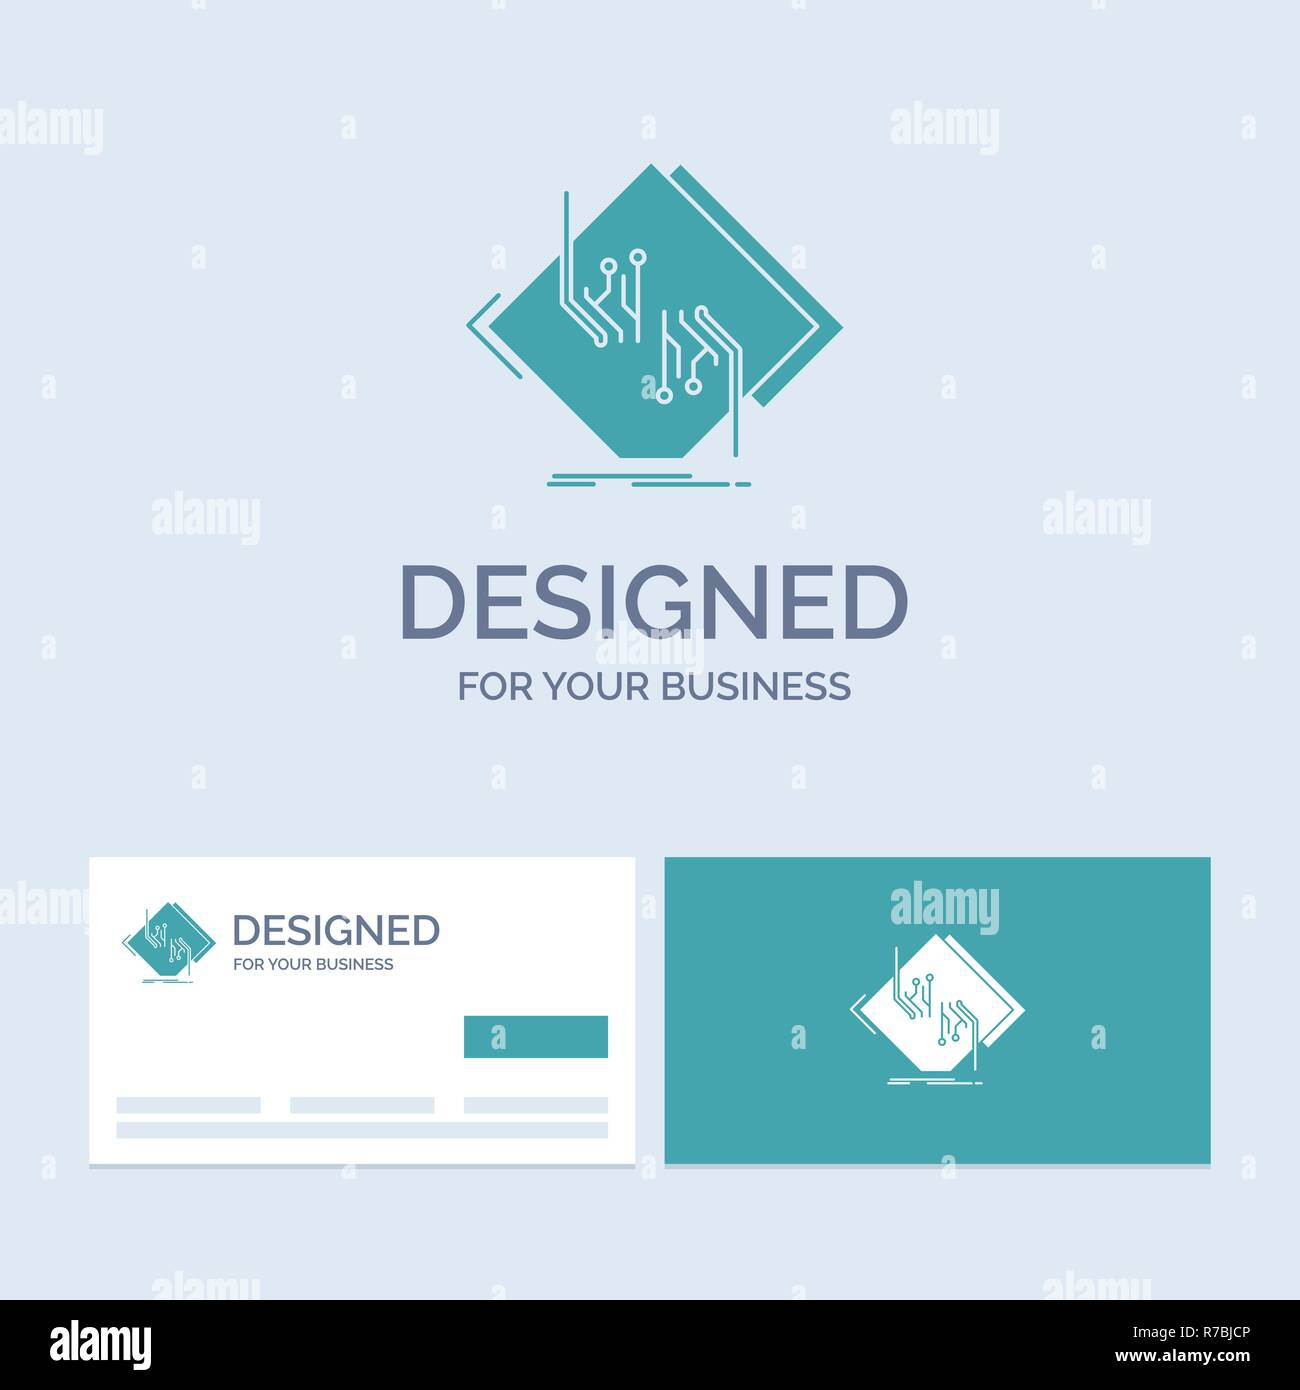 Board, chip, circuit, network, electronic Business Logo Glyph Icon Symbol for your business. Turquoise Business Cards with Brand logo template. - Stock Image